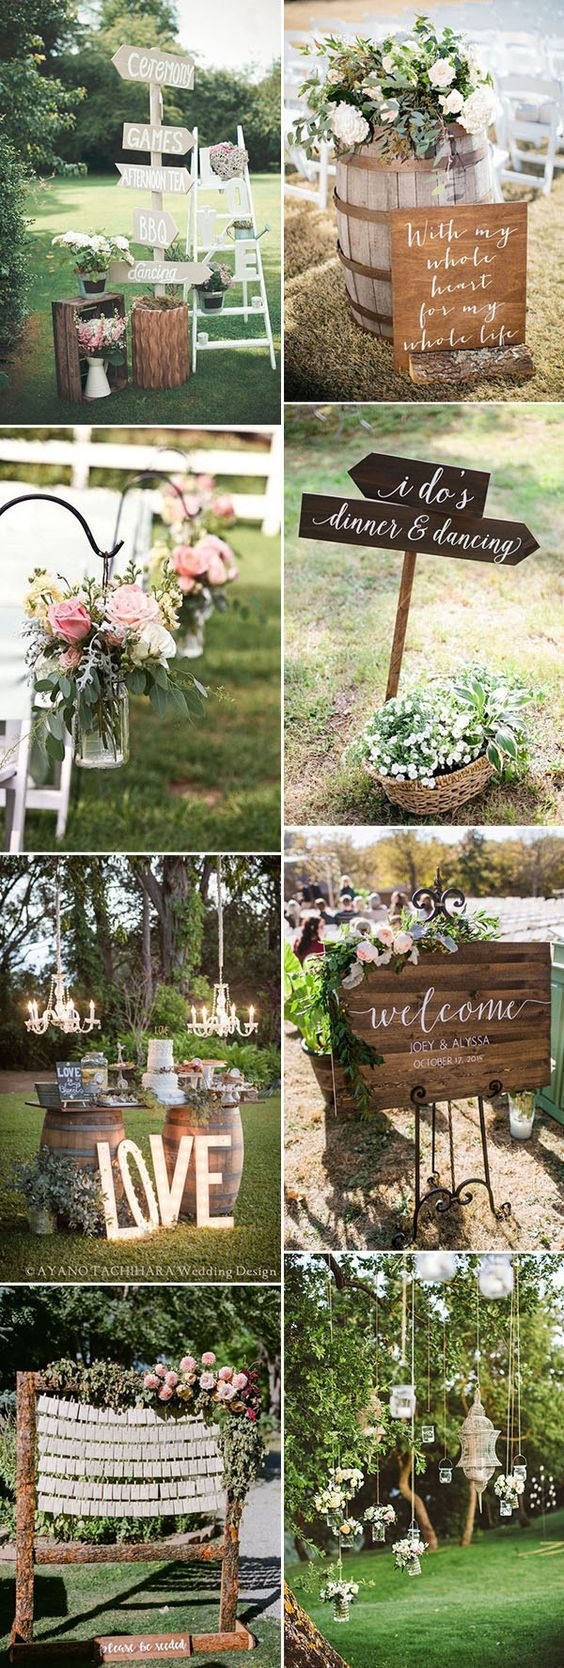 Garden wedding decoration ideas  amazing garden wedding decor ideas that are easy to DIY  Shabby